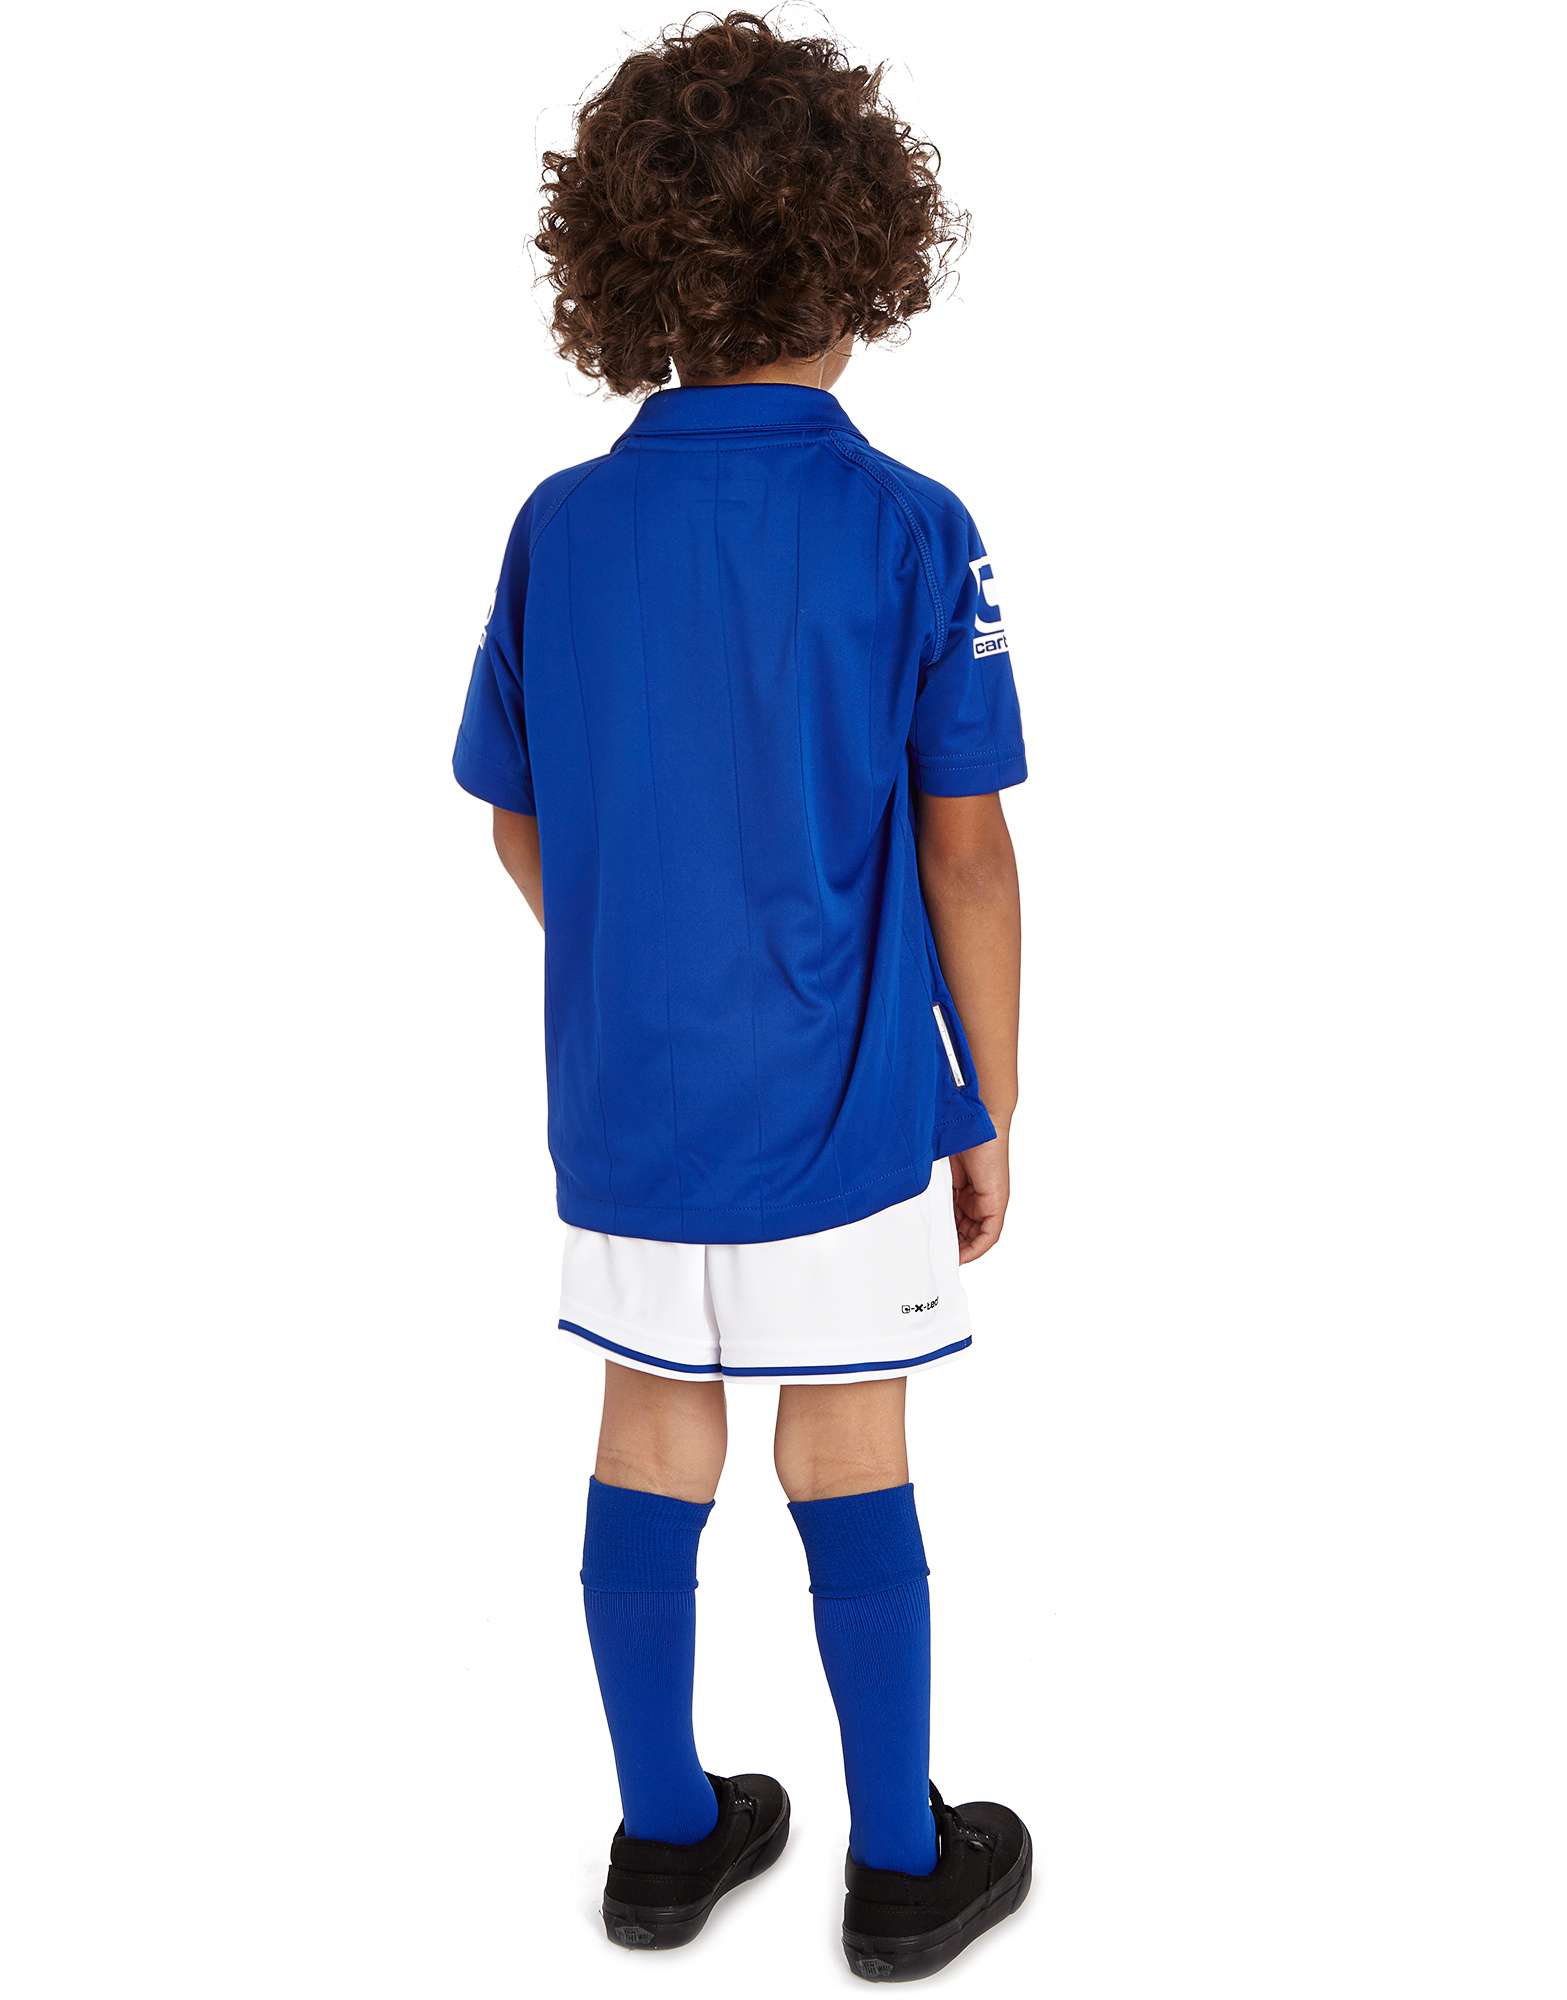 Carbrini Birmingham City FC 2014 Home Kit Infant